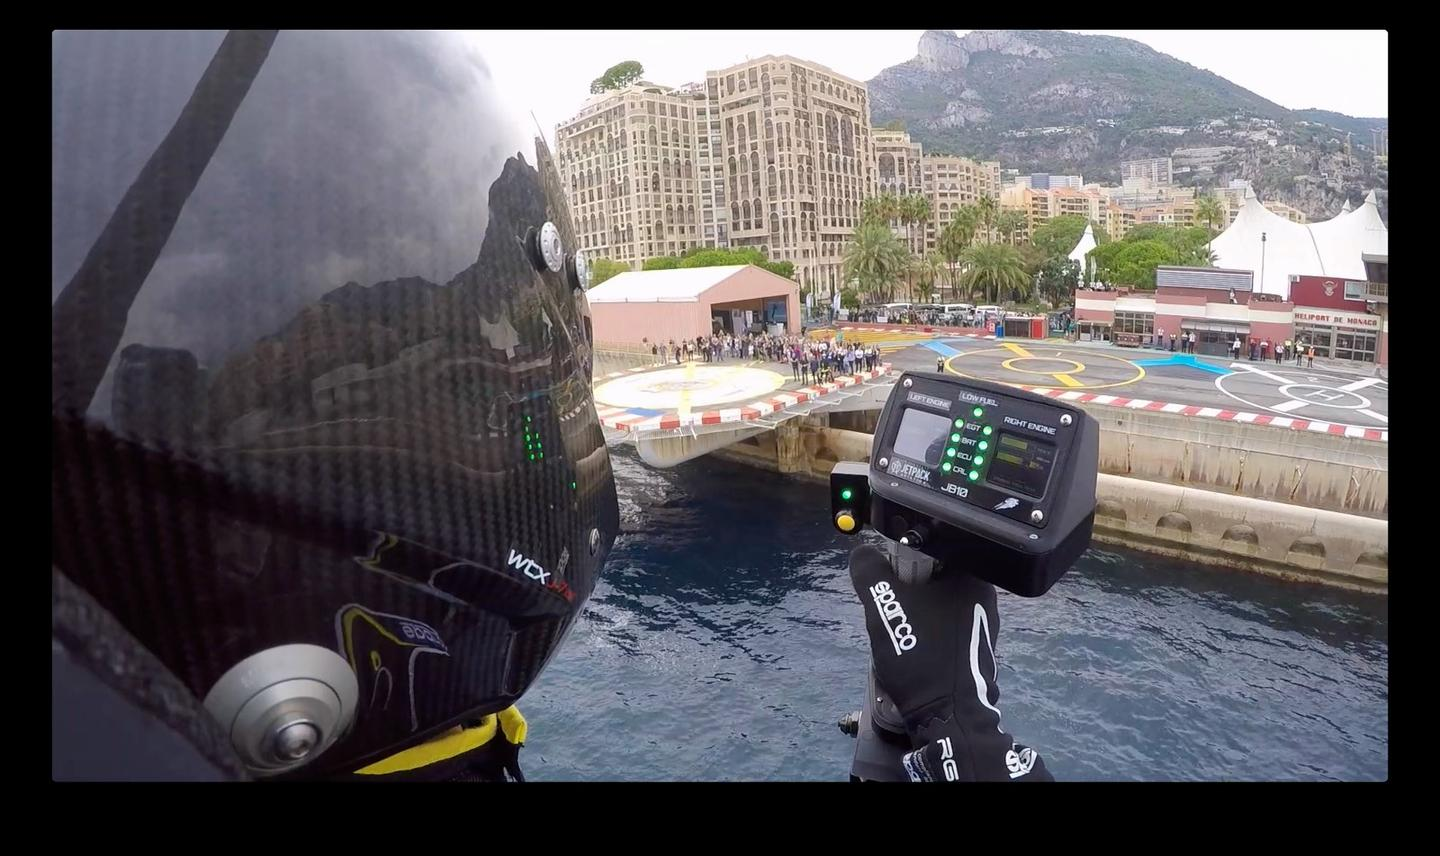 Bid's eye view: David Mayman flies the JB-10 jetpack in Monaco